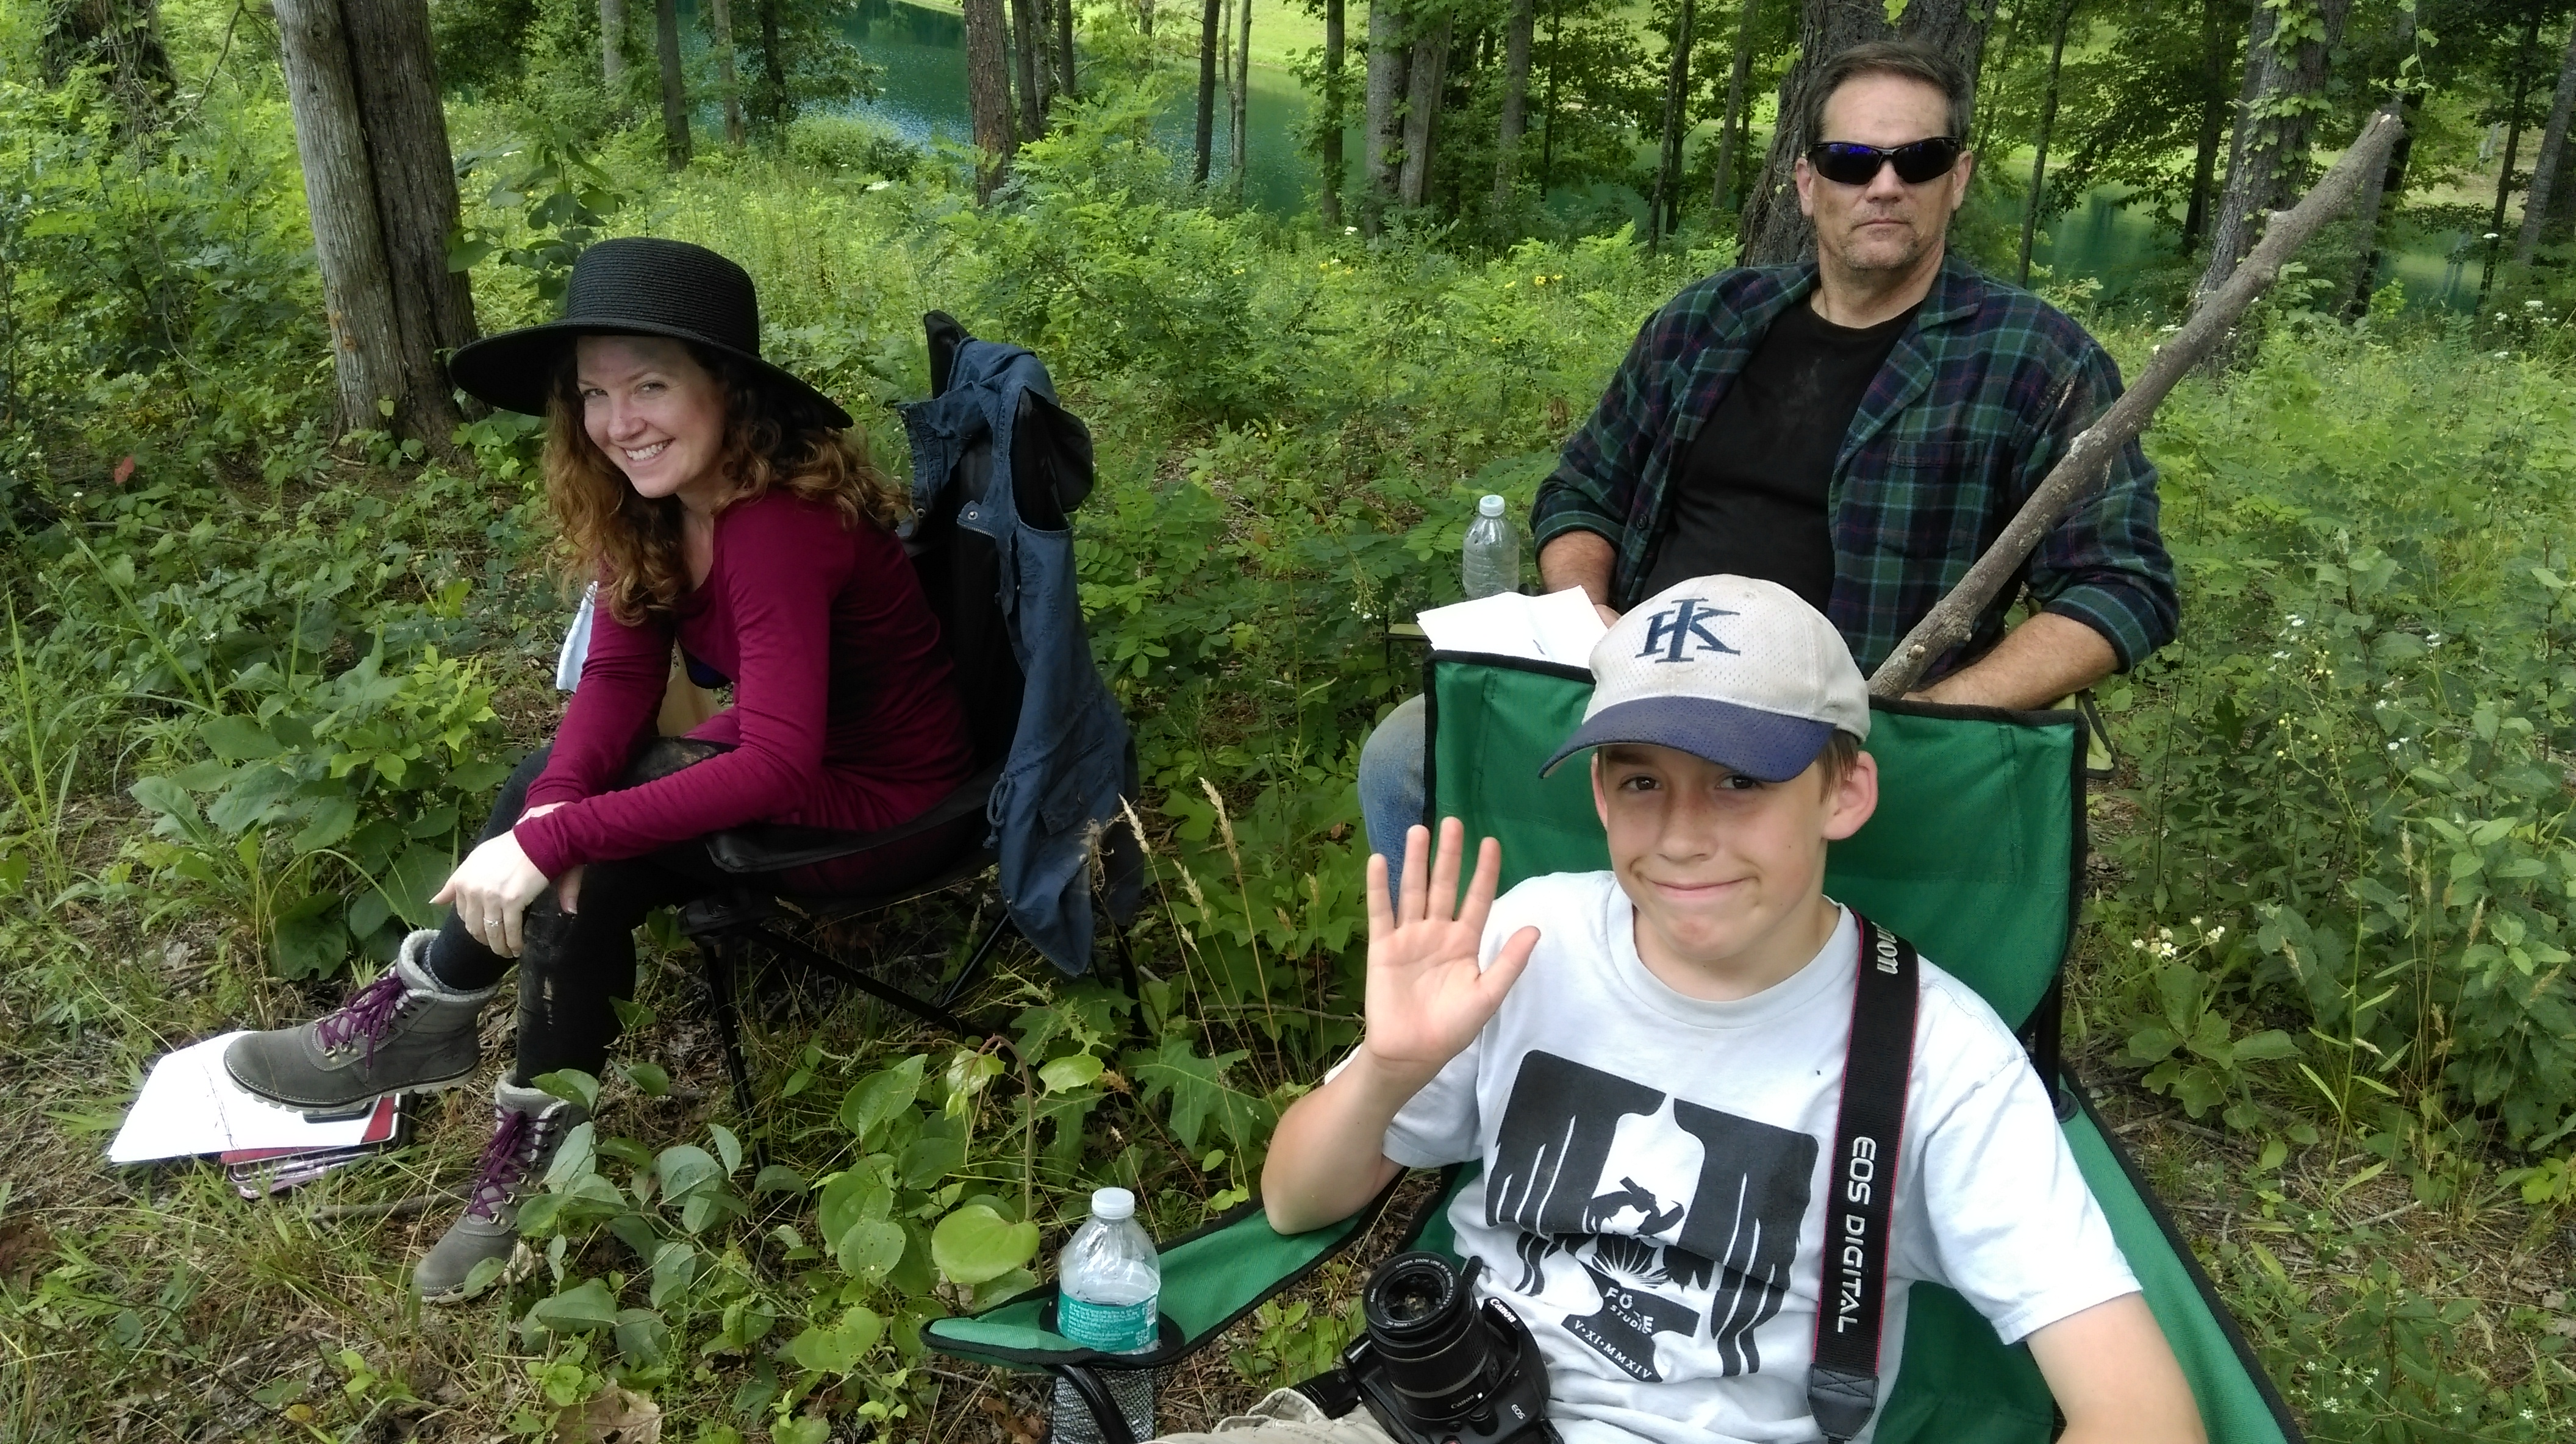 In the woods between takes